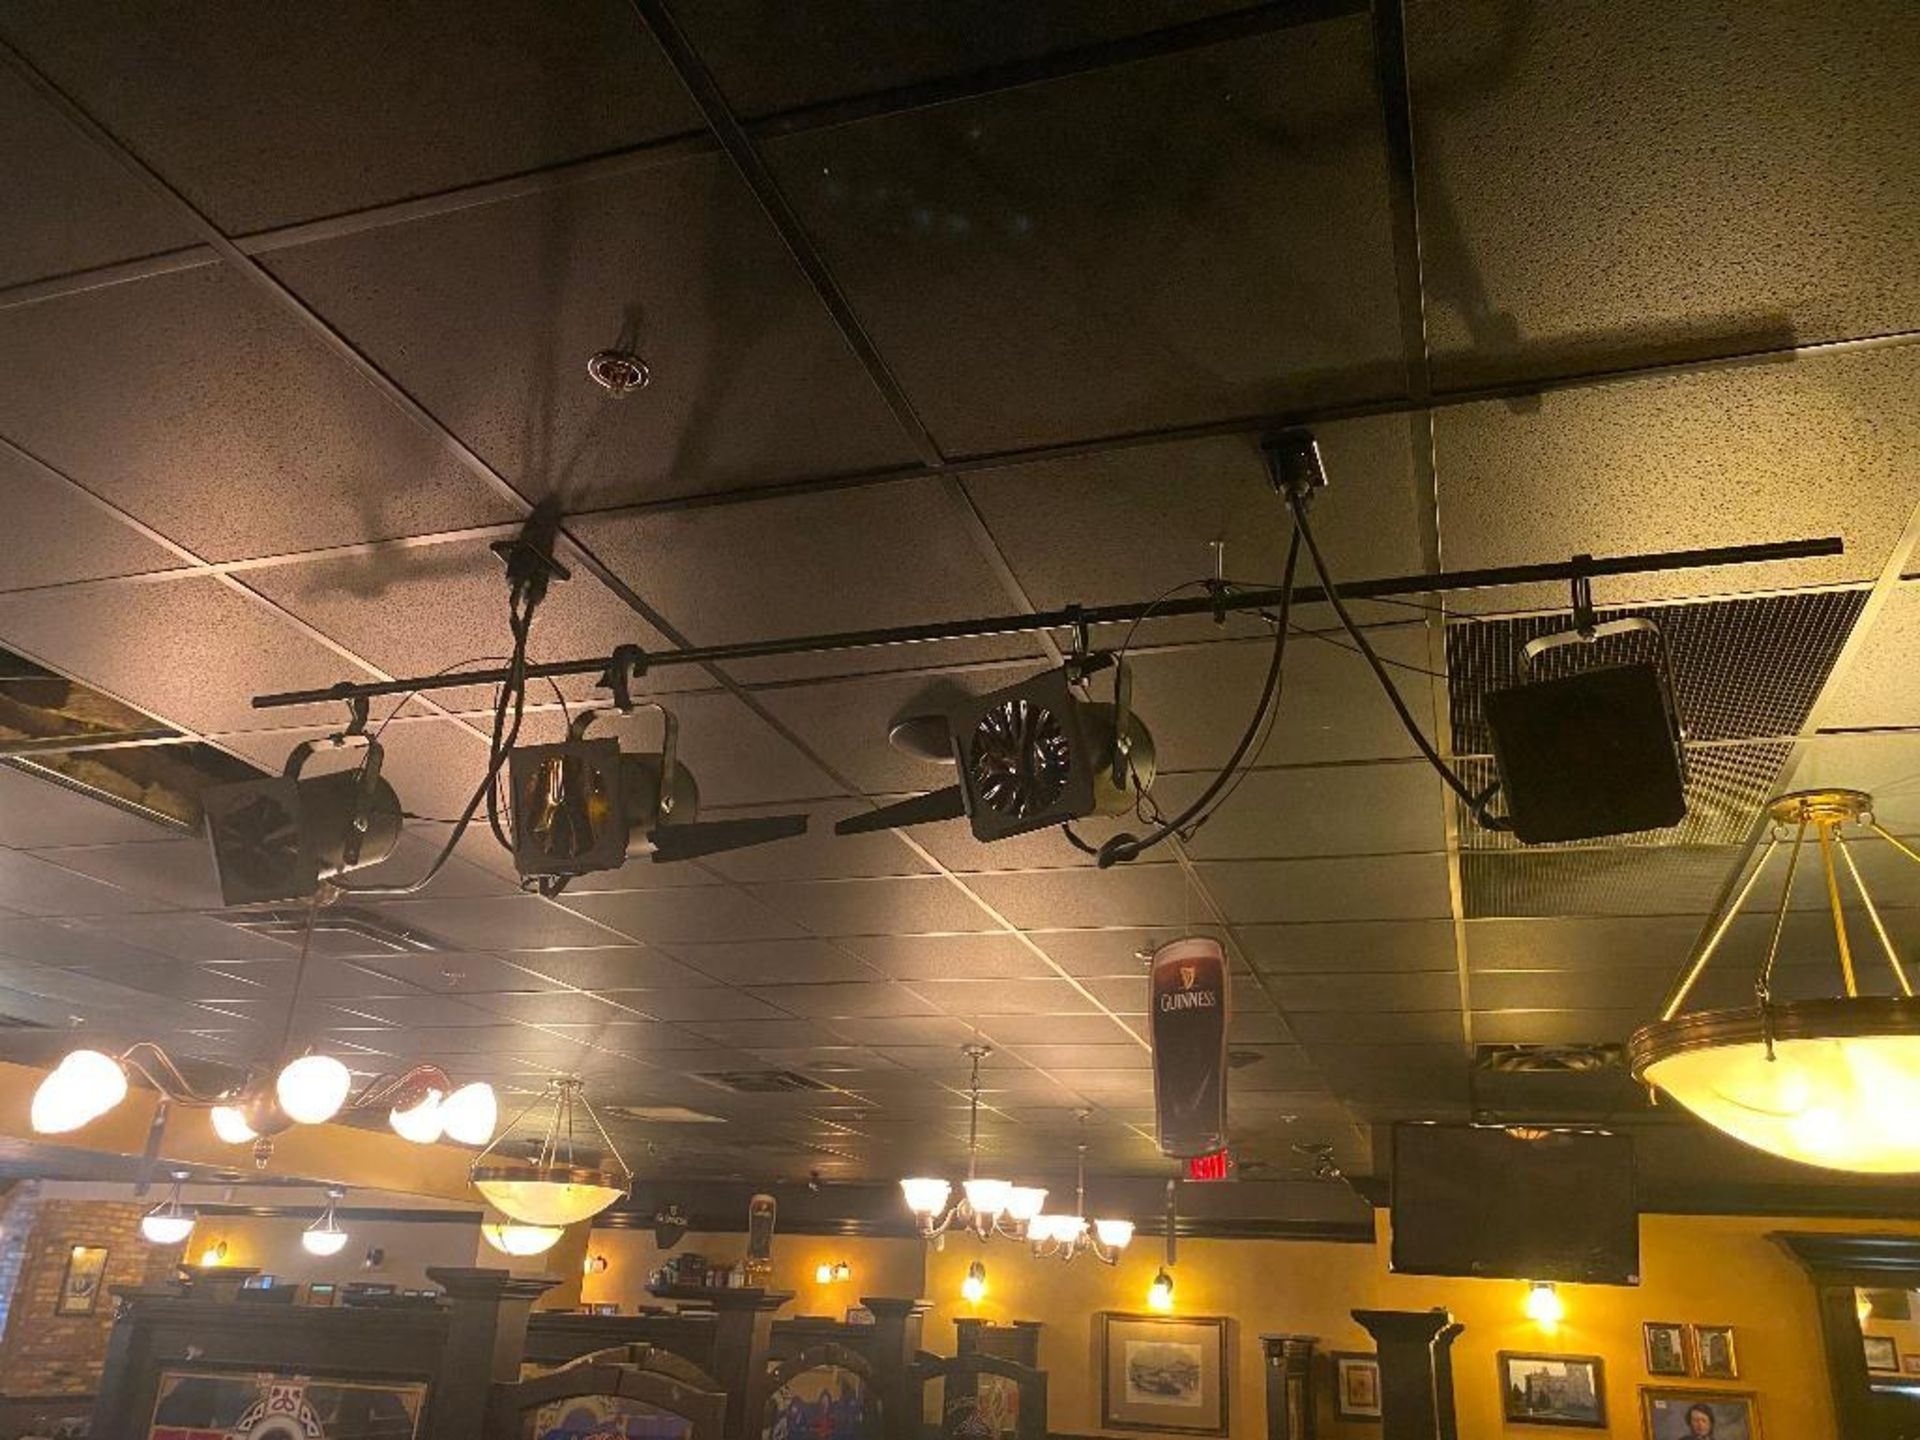 LOT OF (4) STAGE LIGHTS - NOTE: REQUIRES REMOVAL FROM CEILING